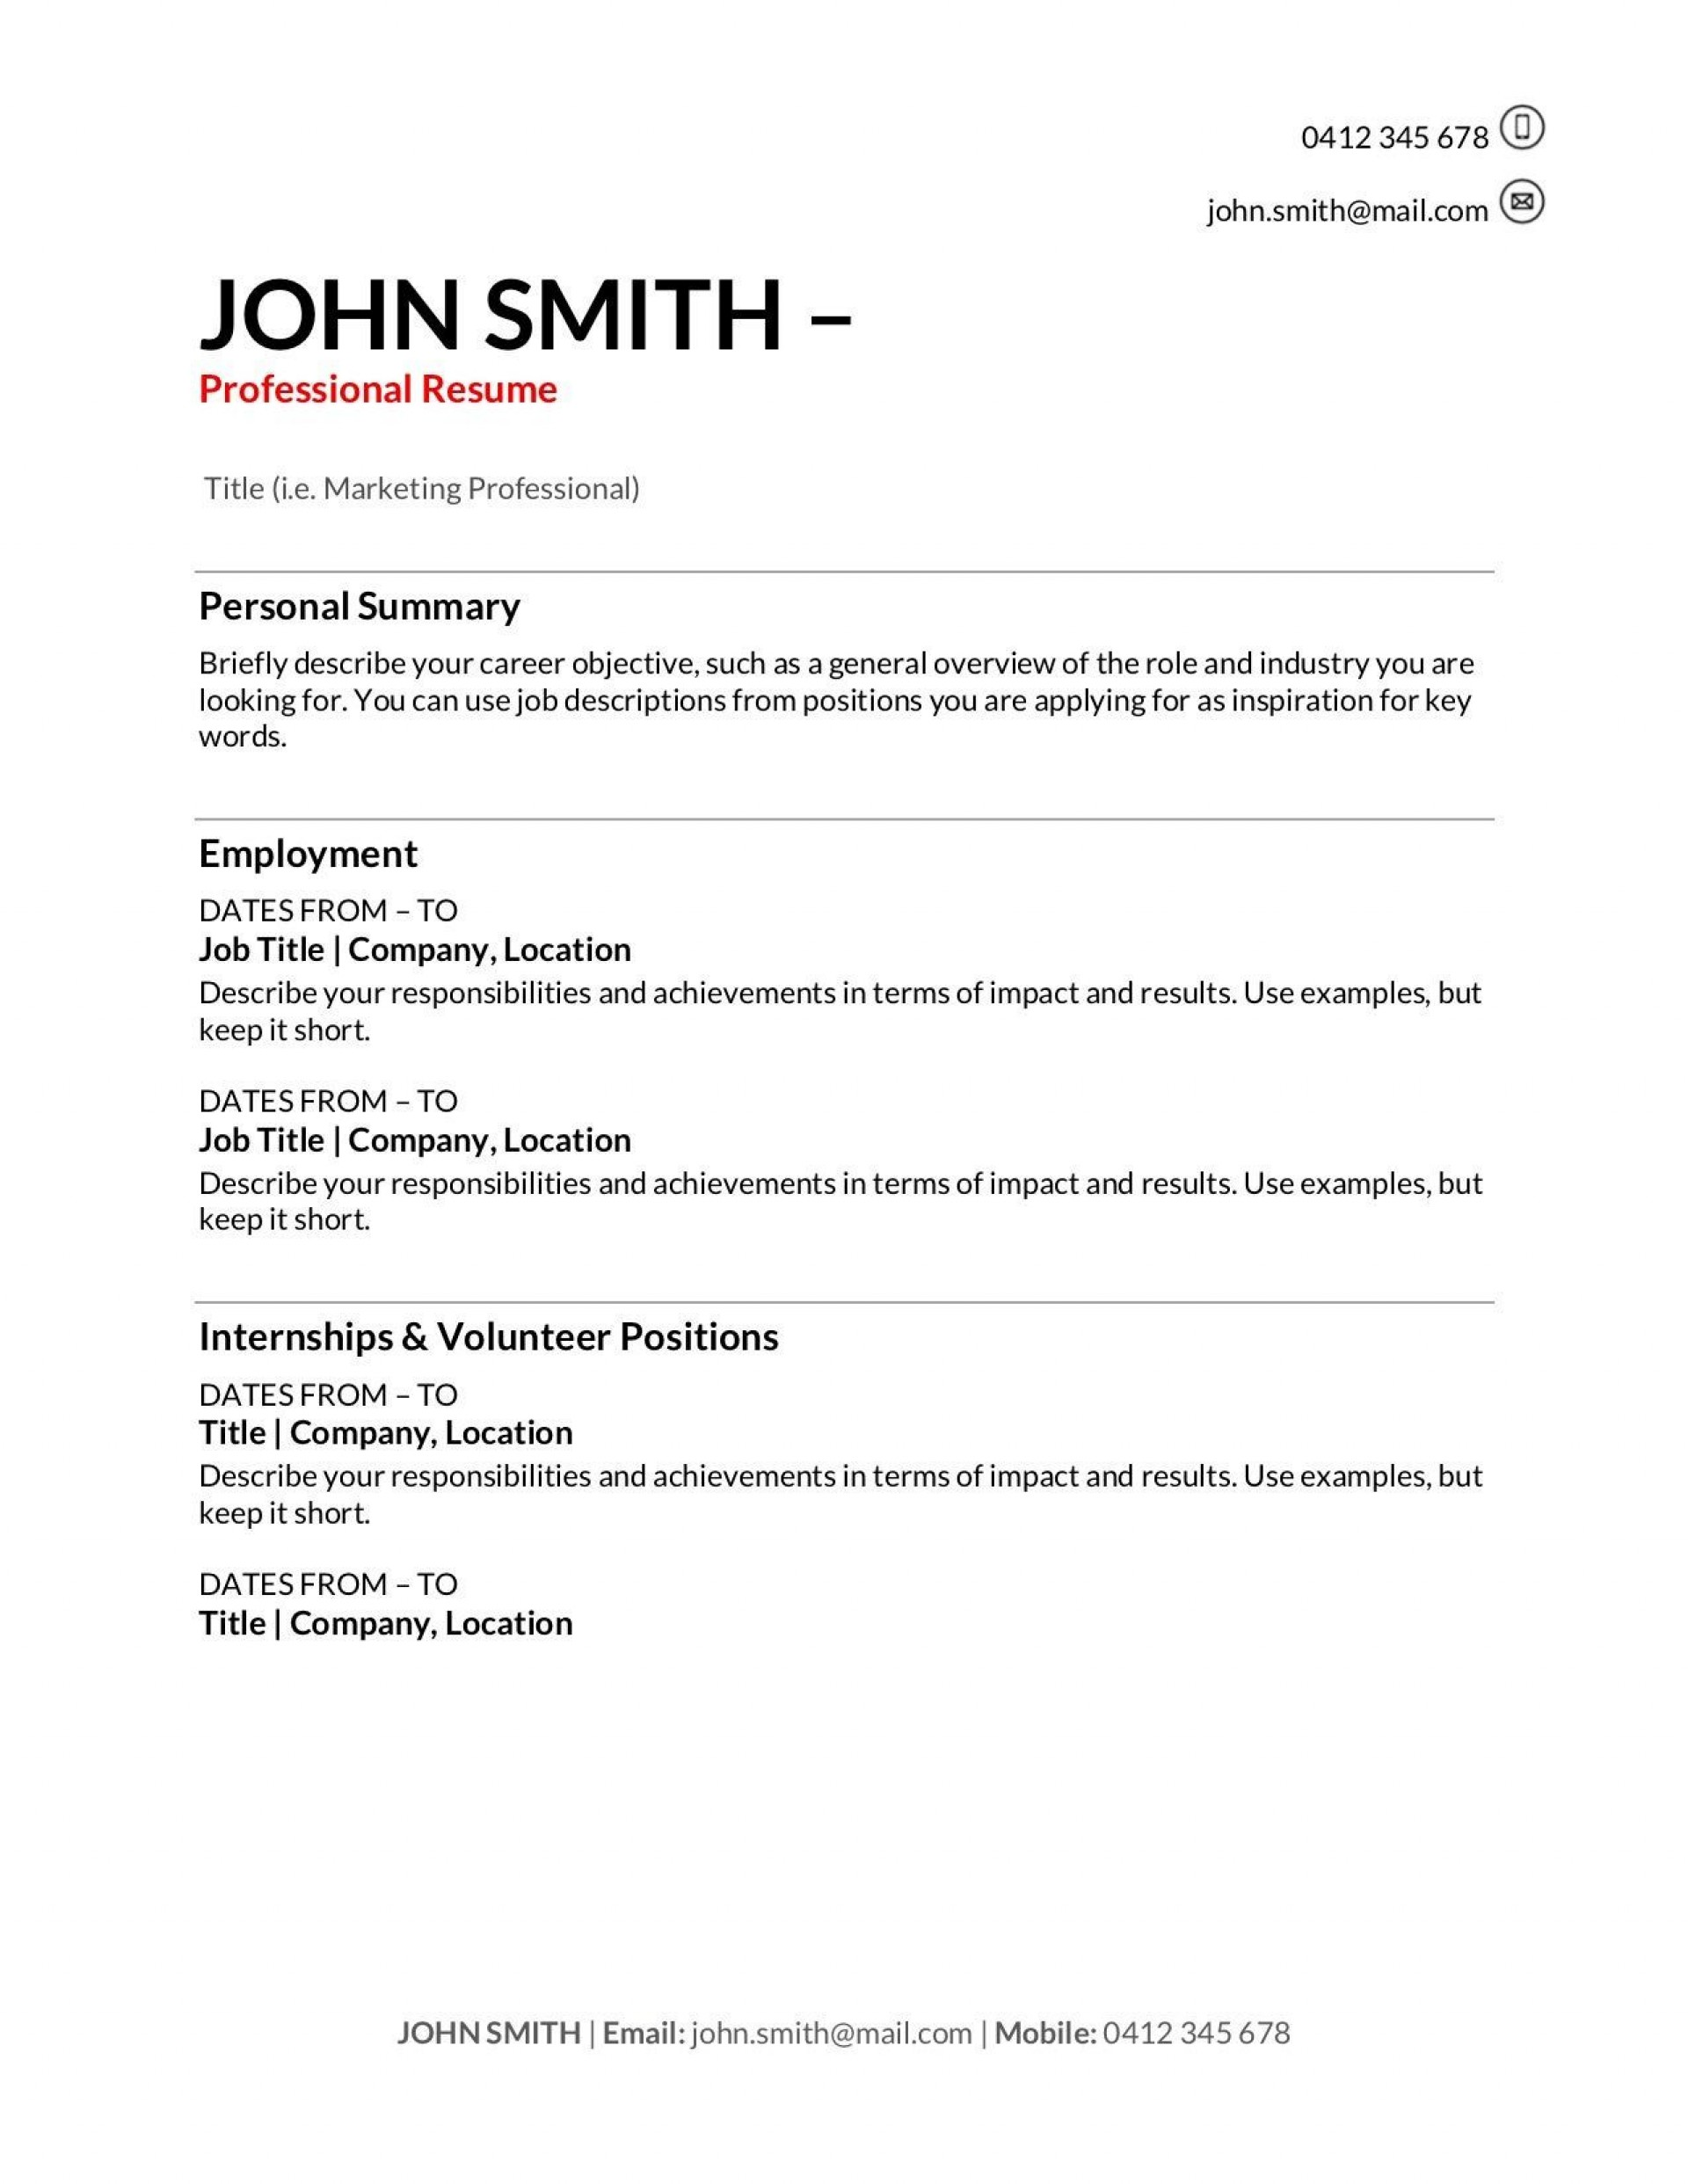 first job resume template addictionary format for simple highest quality marine Resume Resume Format For First Job